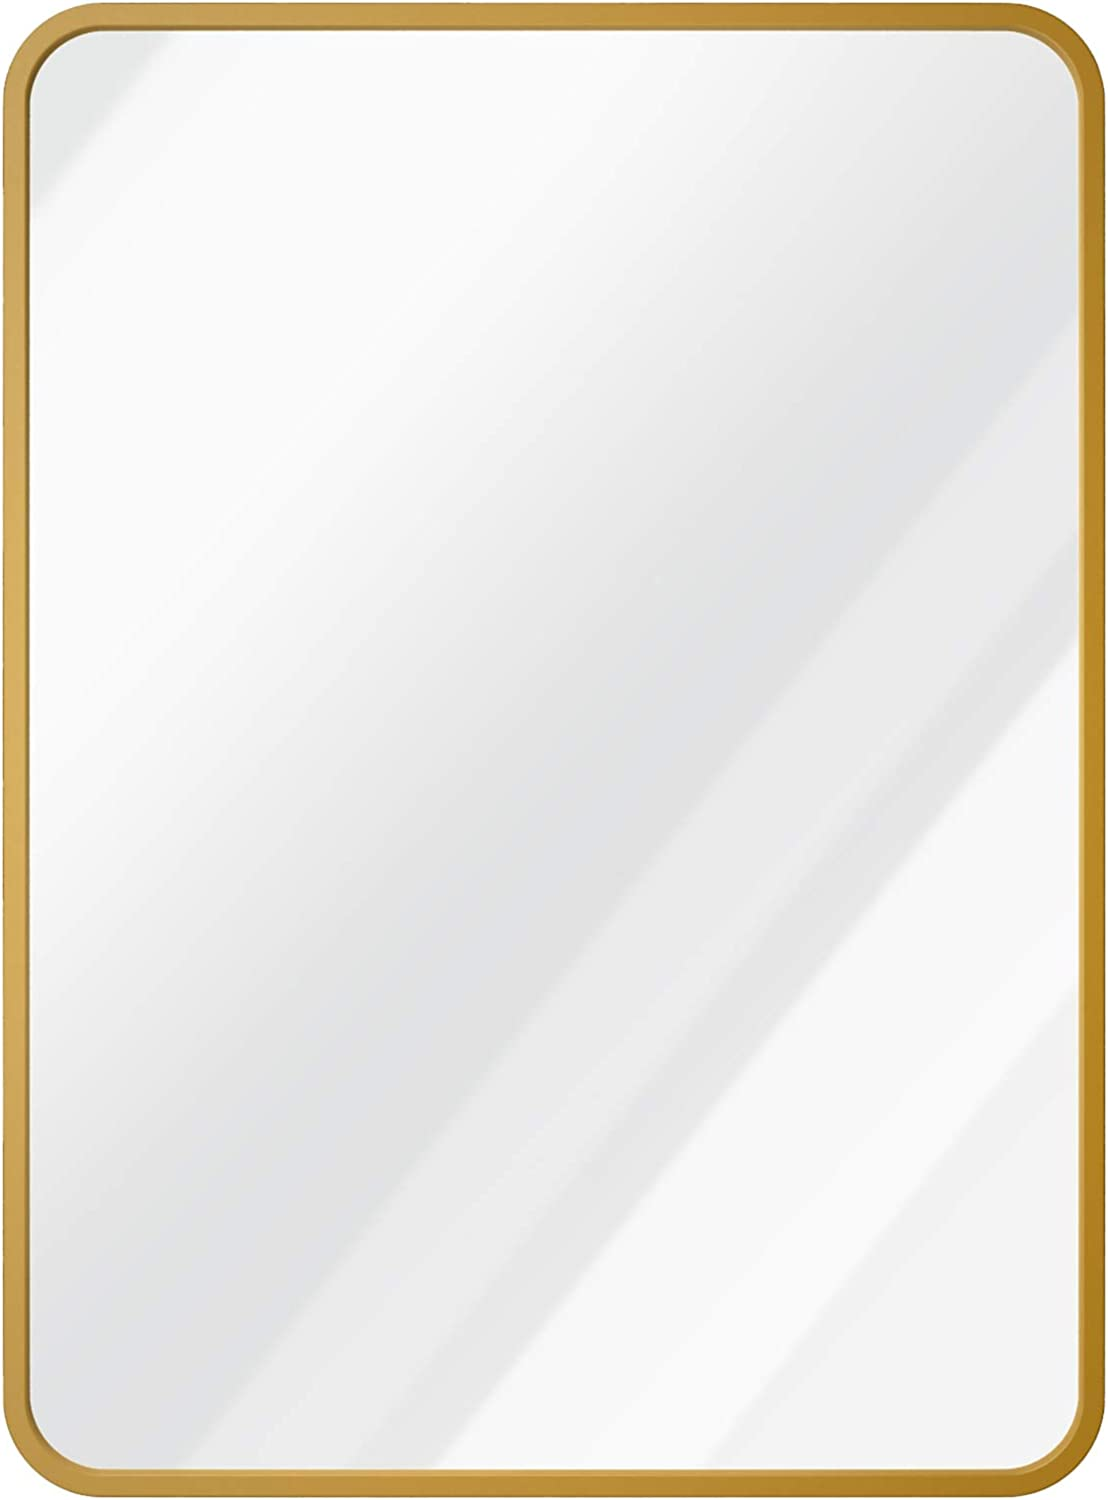 """USHOWER 24"""" x 36"""" Gold Rectangle Wall Mirror, Large Metal Frame Decor Mirror for Bathroom, Entryway, Vanity, and More, Rounded Corner, Farmhouse & Modern Style"""